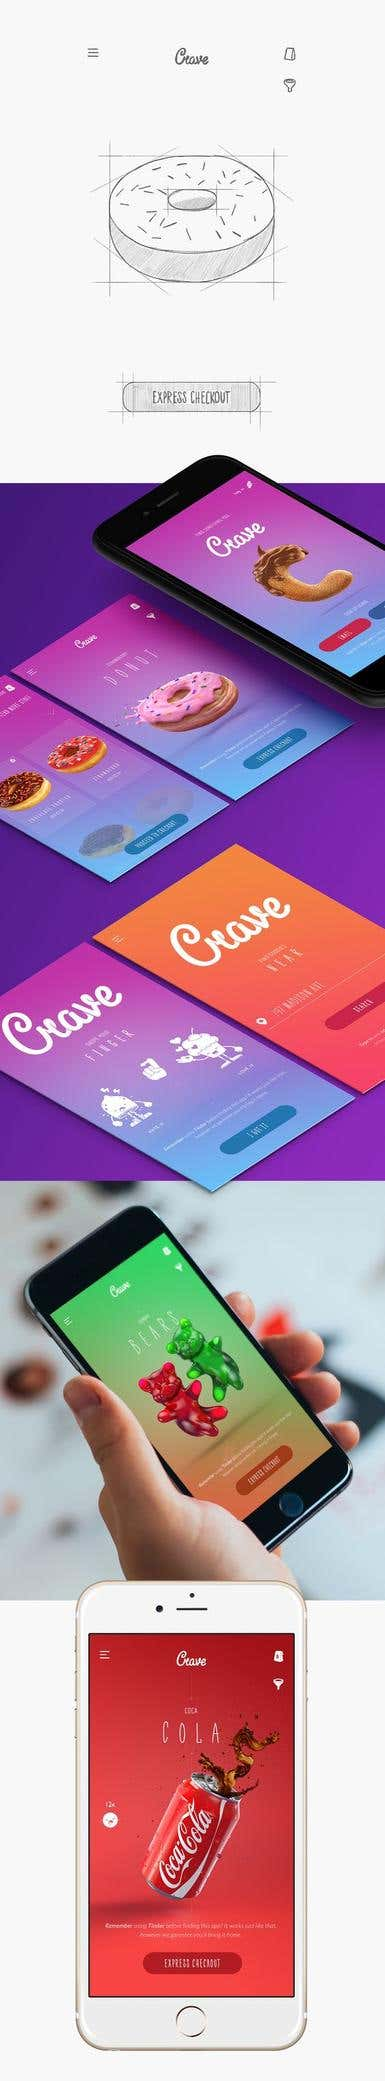 Food Delivery App (Crave)